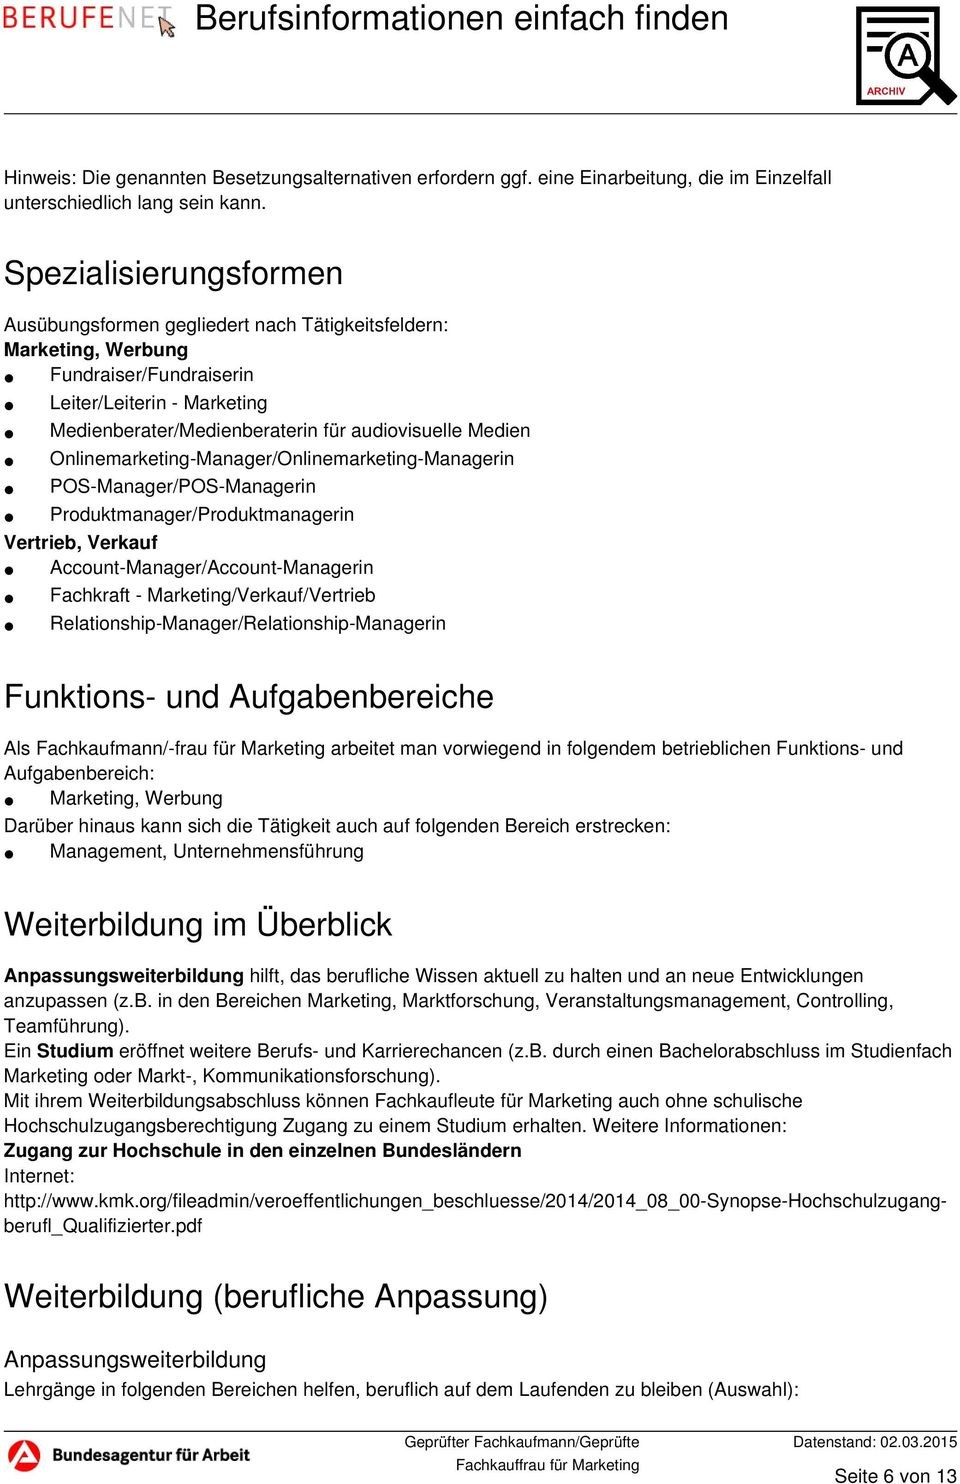 Onlinemarketing-Manager/Onlinemarketing-Managerin POS-Manager/POS-Managerin Produktmanager/Produktmanagerin Vertrieb, Verkauf Account-Manager/Account-Managerin Fachkraft - Marketing/Verkauf/Vertrieb